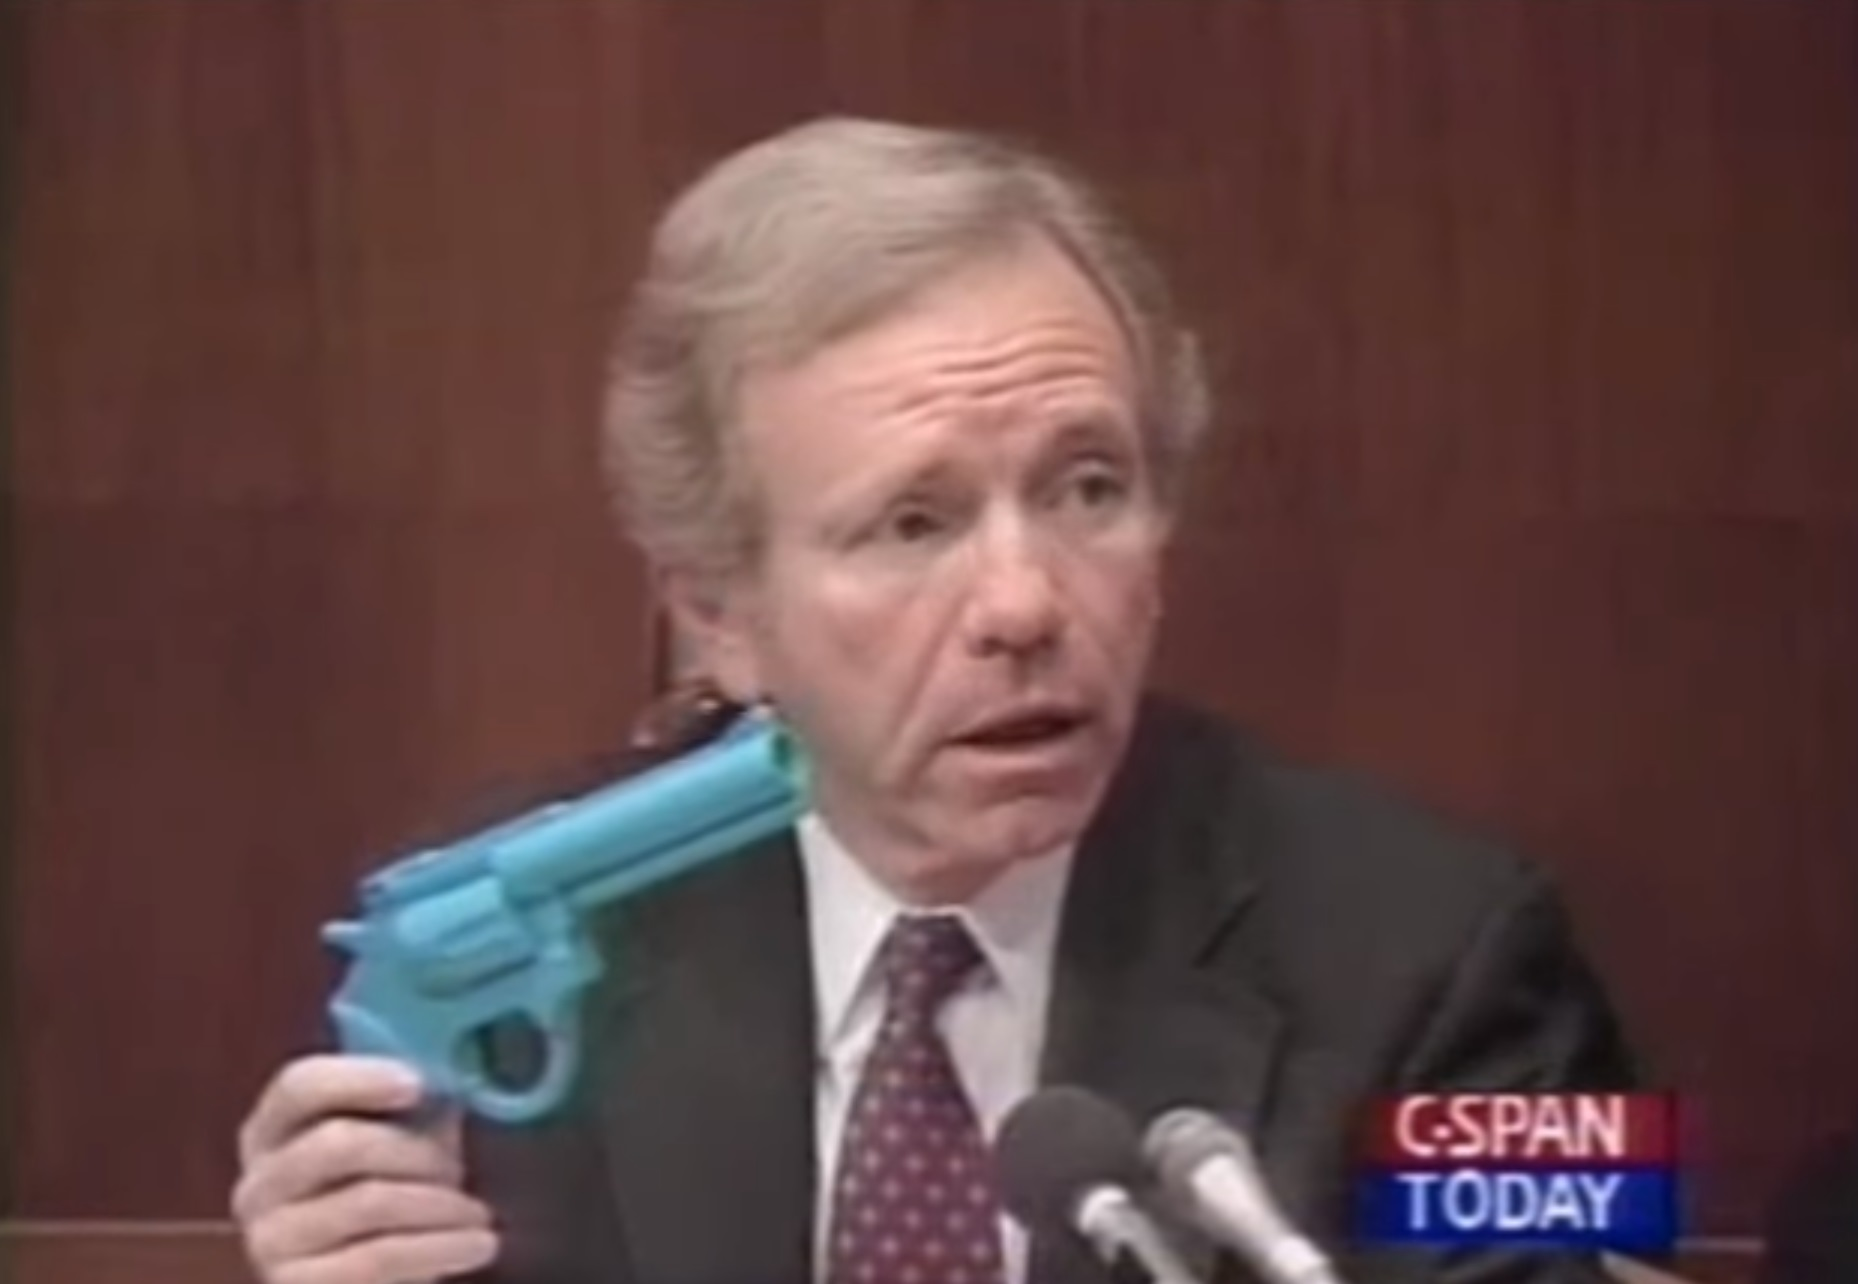 """Senator Joe Lieberman (I-Conn.) holds a light gun during <a href=""""https://arstechnica.com/features/2017/08/night-traps-weird-path-from-congressional-crosshairs-to-2017-remastered-edition/"""">hearings on video game violence in 1993</a>, the first time the federal government addressed the issue."""